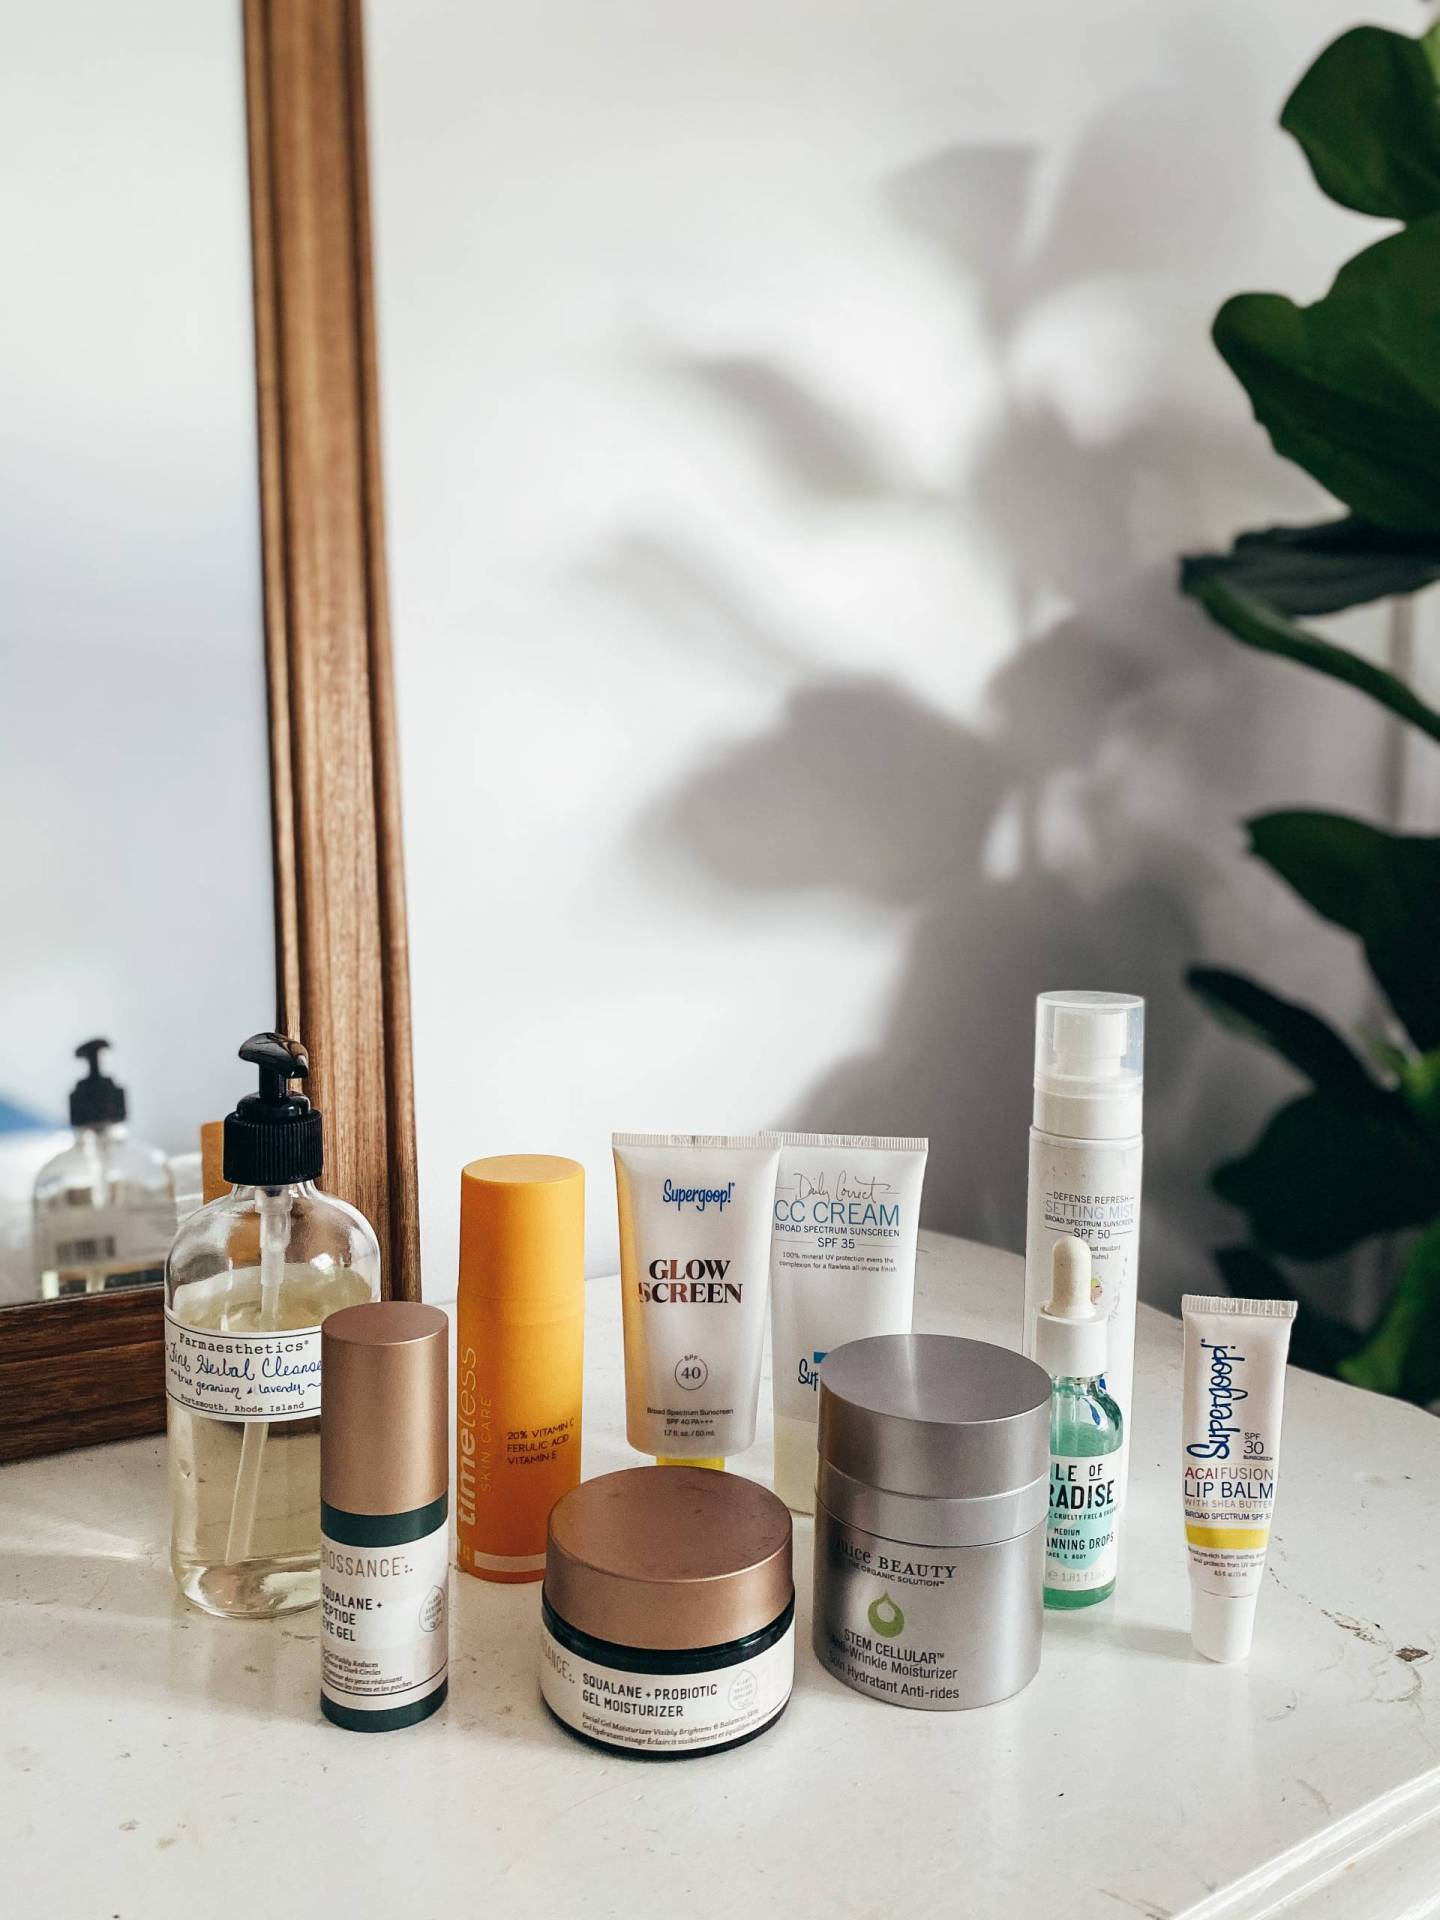 My Non-Toxic Morning Skincare Routine.